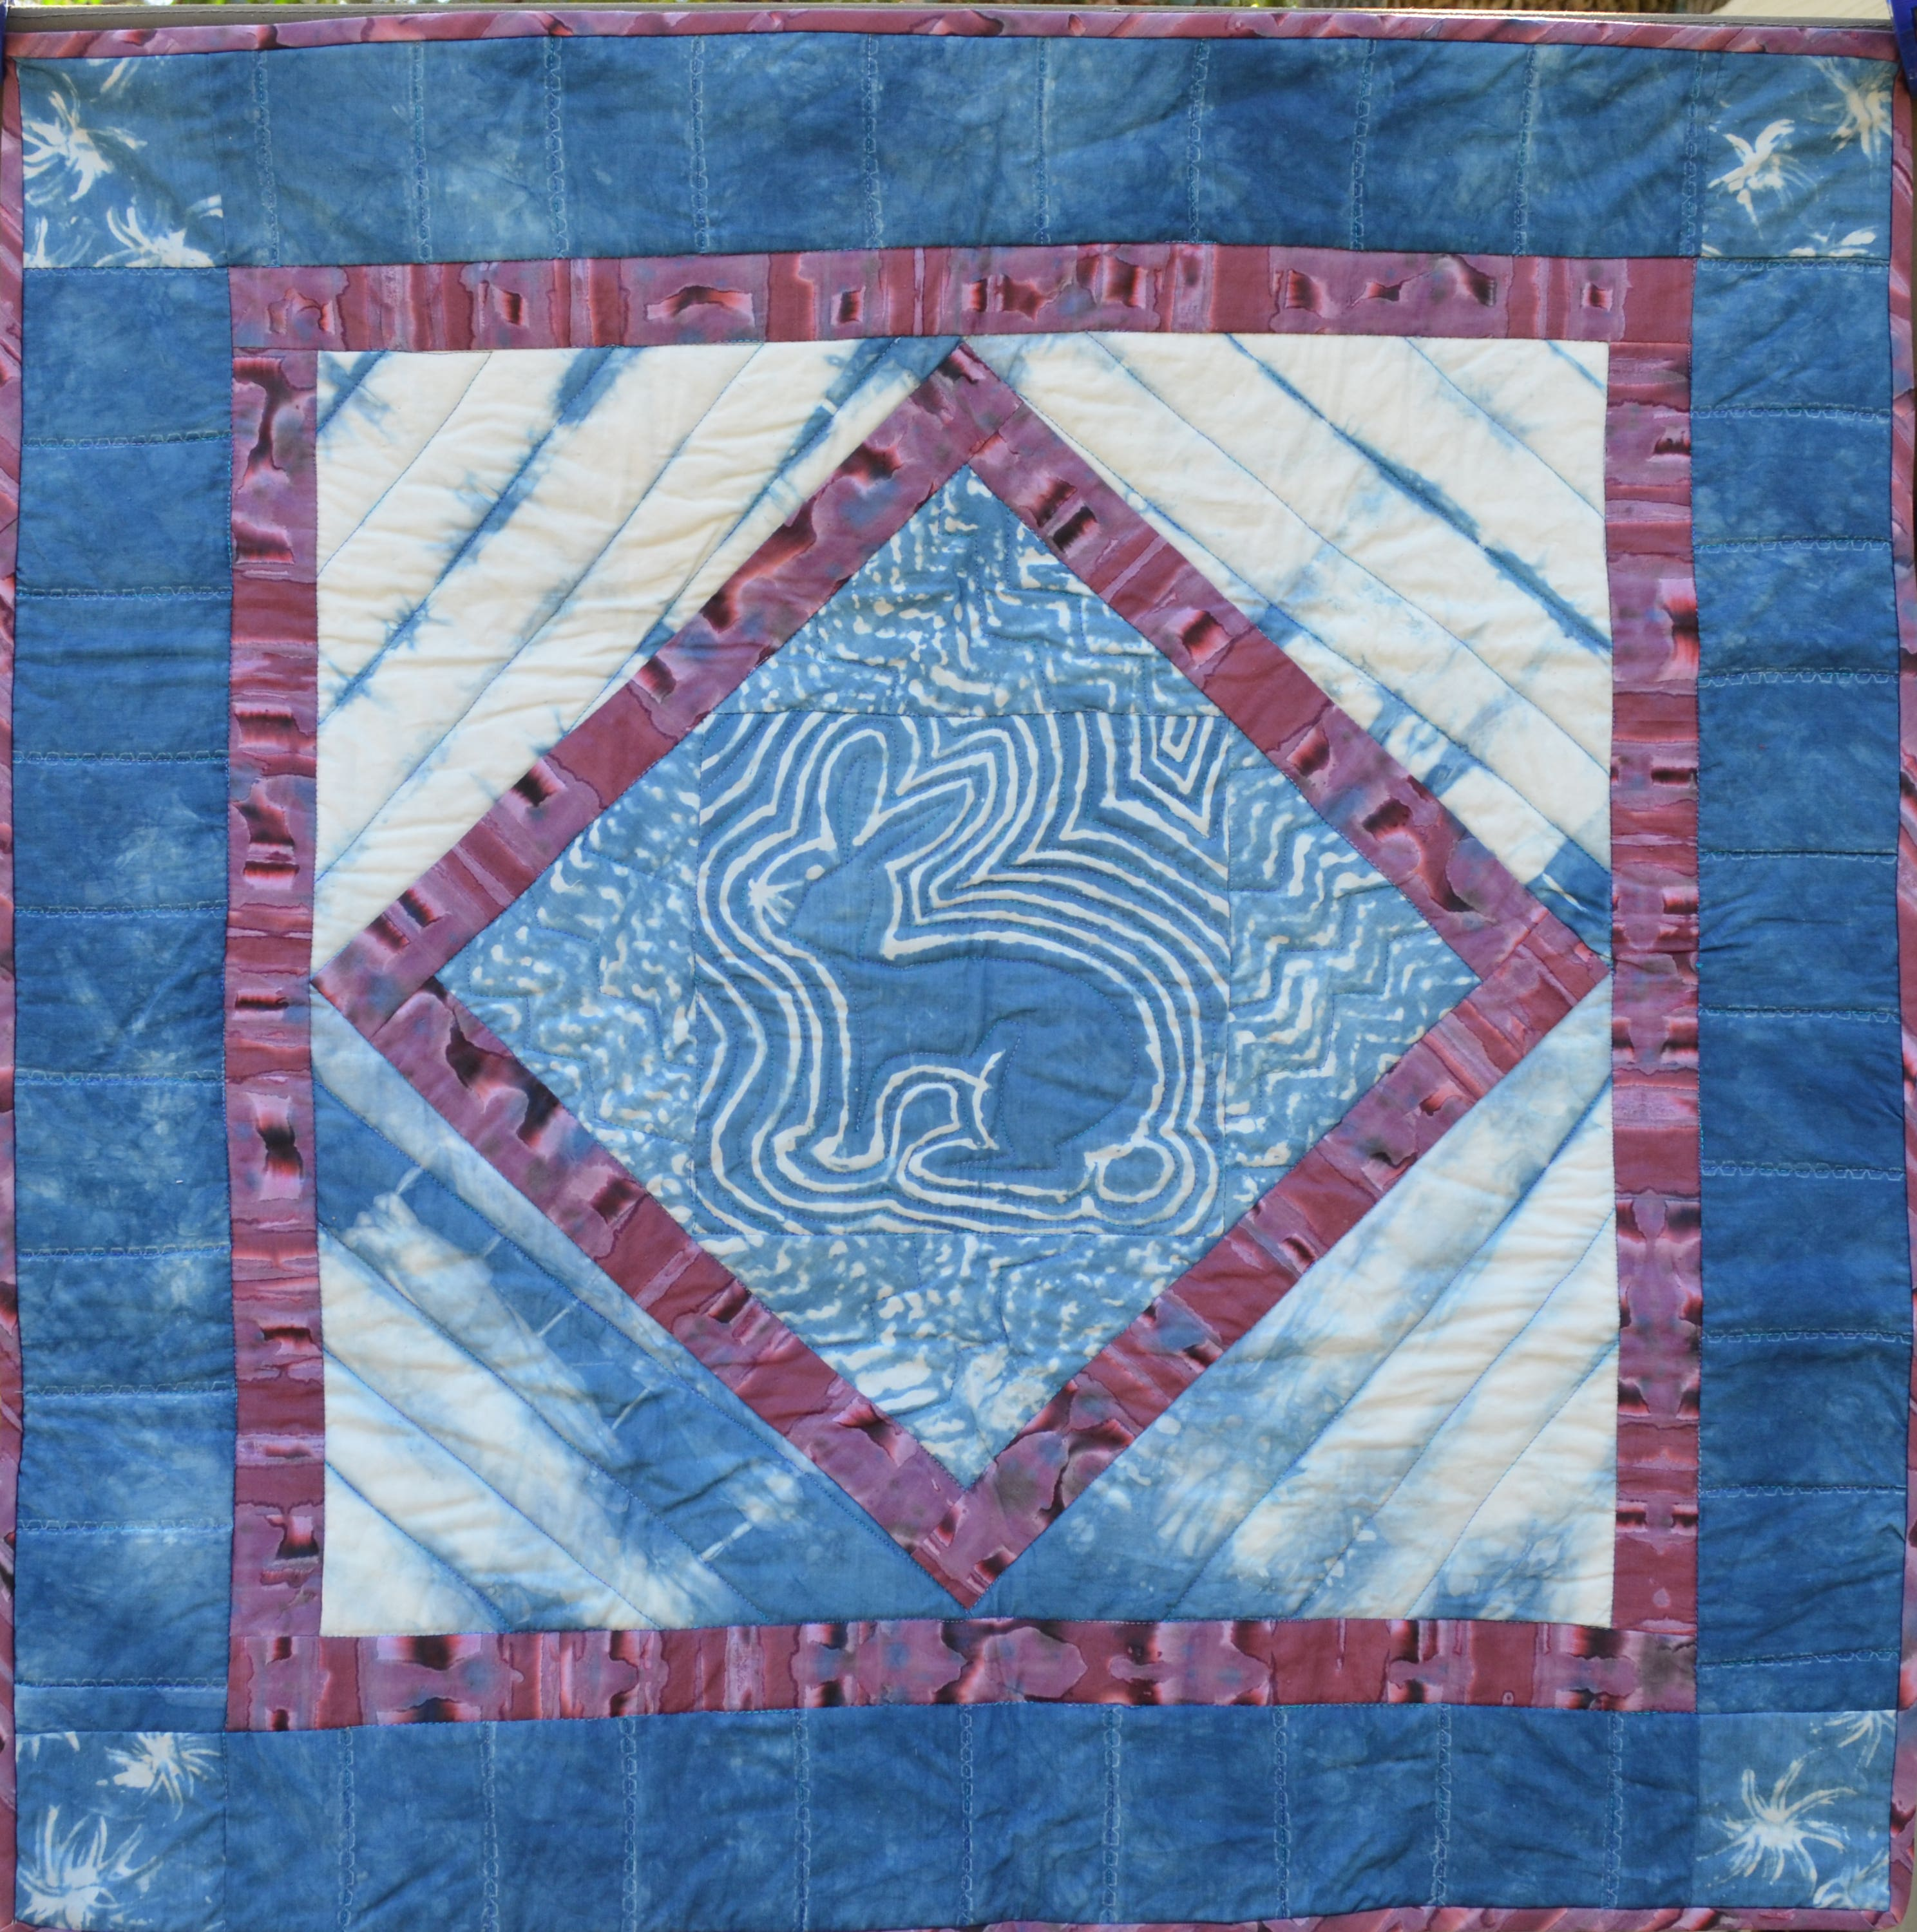 Small quilt with several indigo dyed fabrics. The central fabric depicts an outline of a rabbit dyed in the fabric using the resist technique.